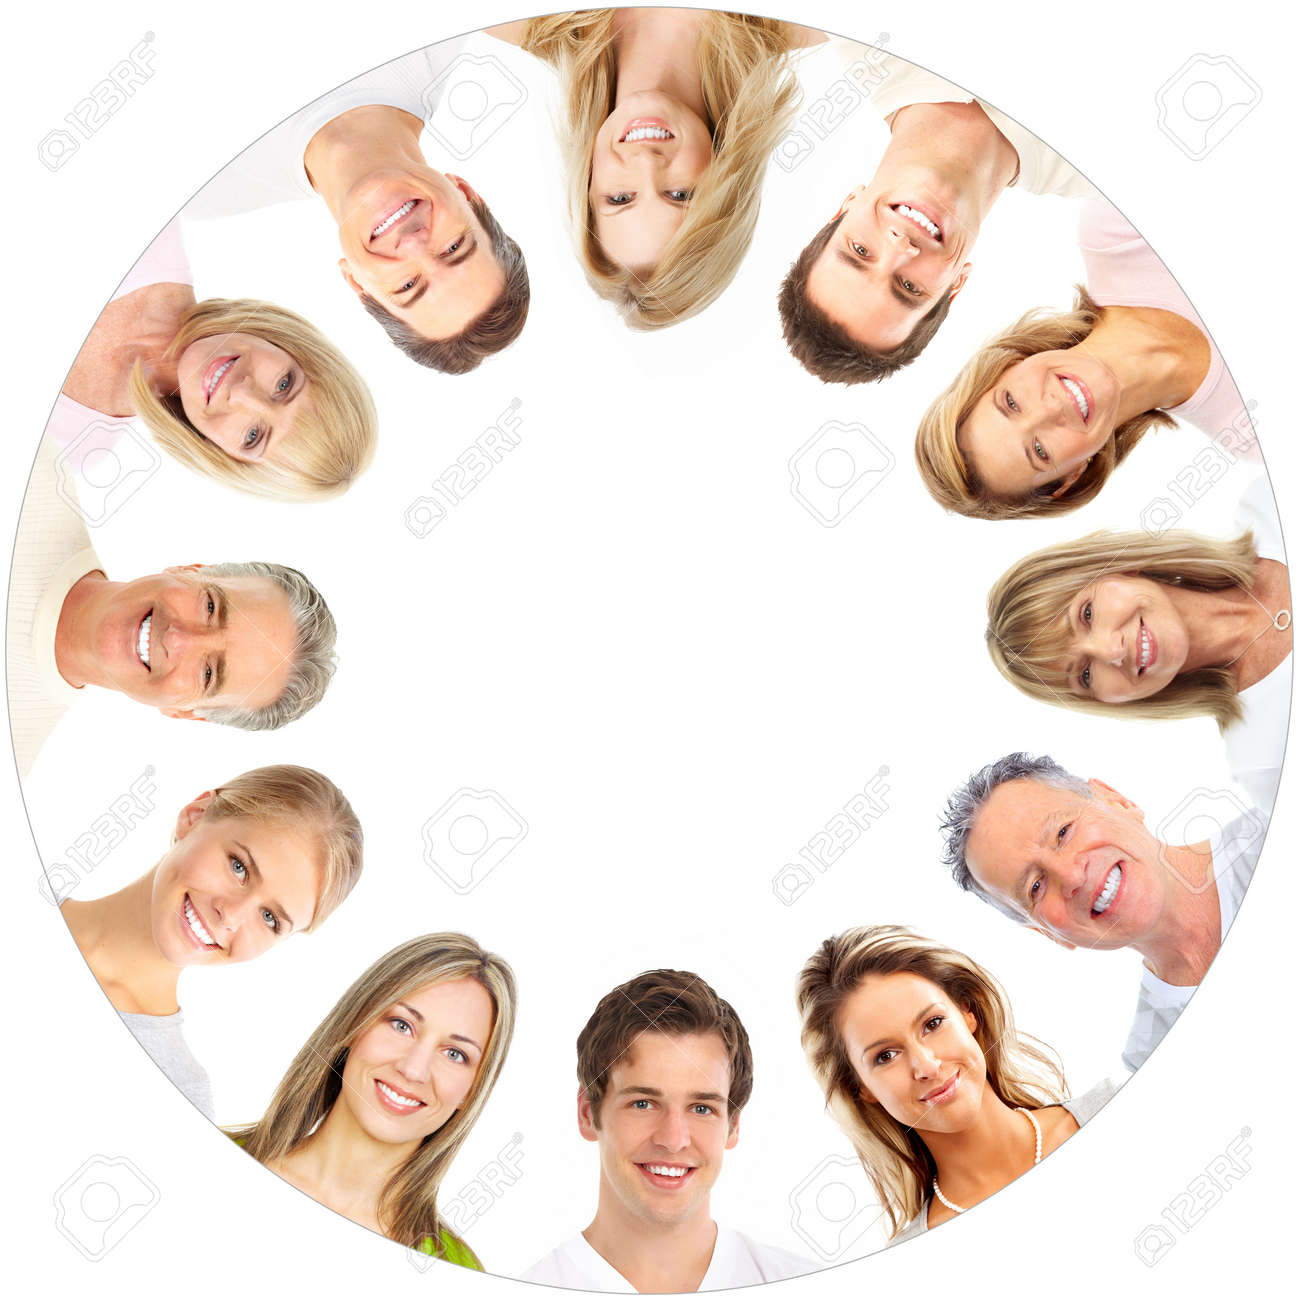 Faces of smiling people. Over white background Stock Photo - 8863910